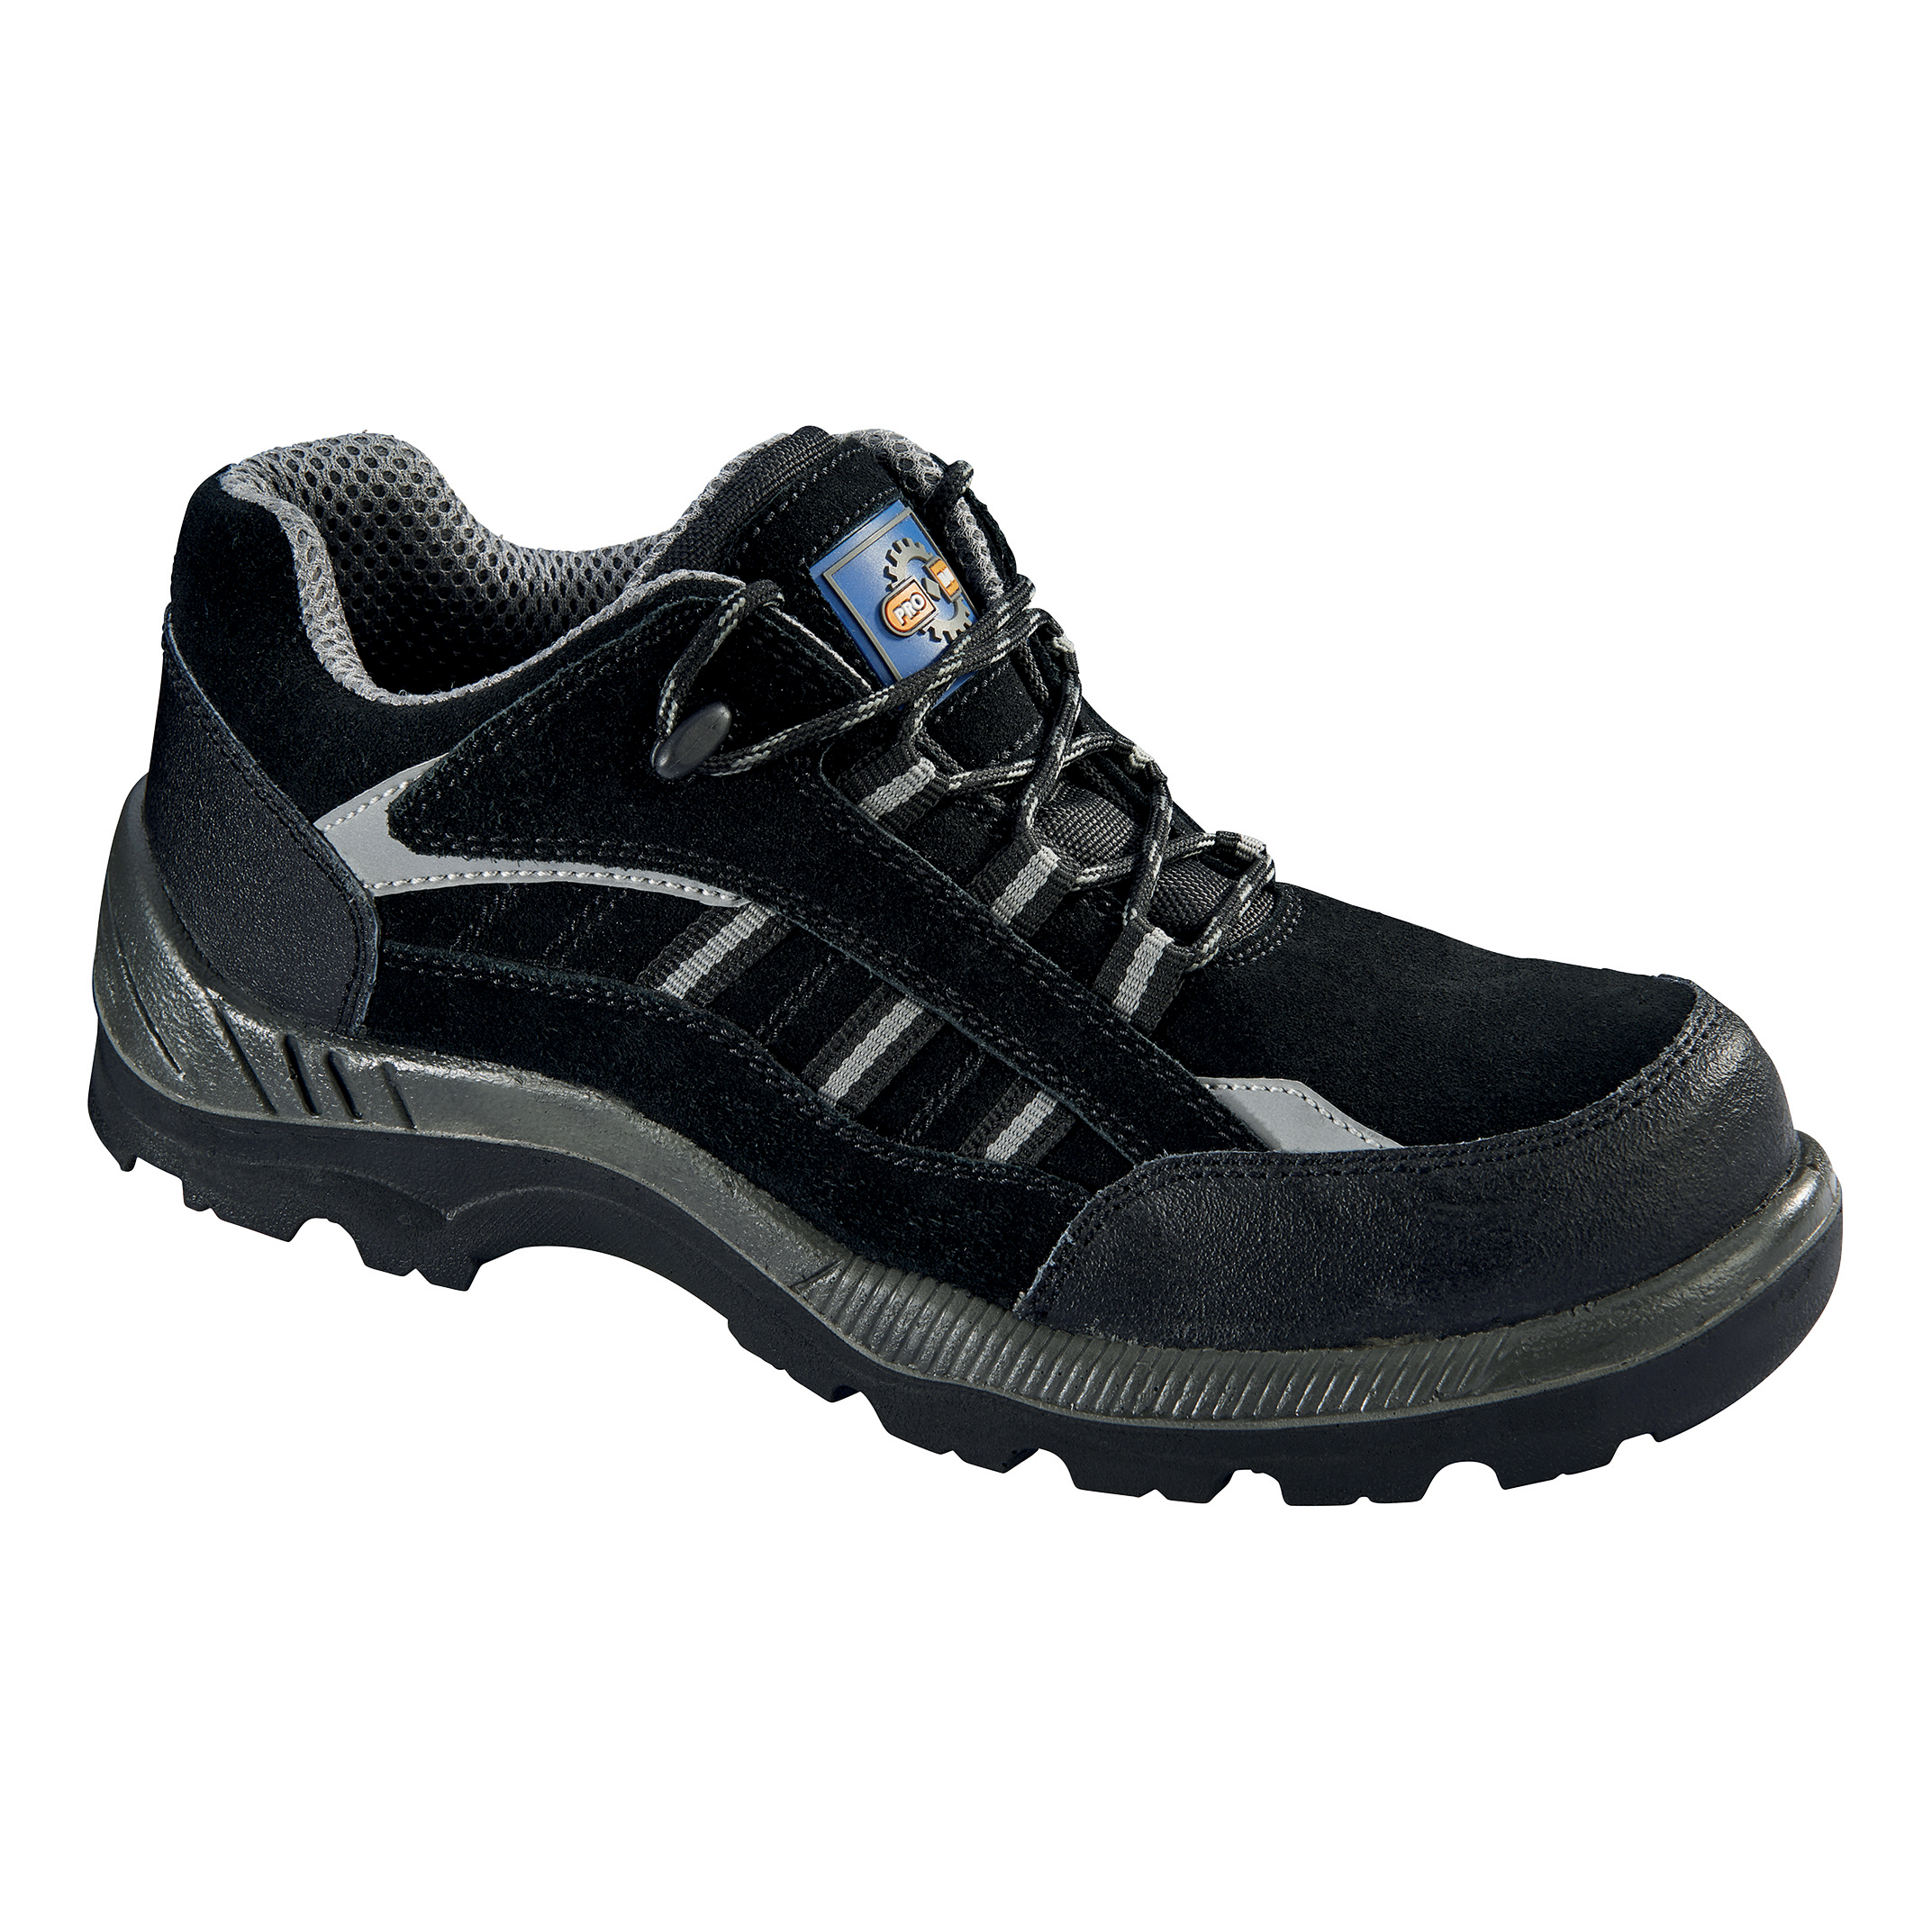 Safety shoes Rockfall ProMan Trainer Suede Fibreglass Toecap Black Size 10 Ref PM4040 10